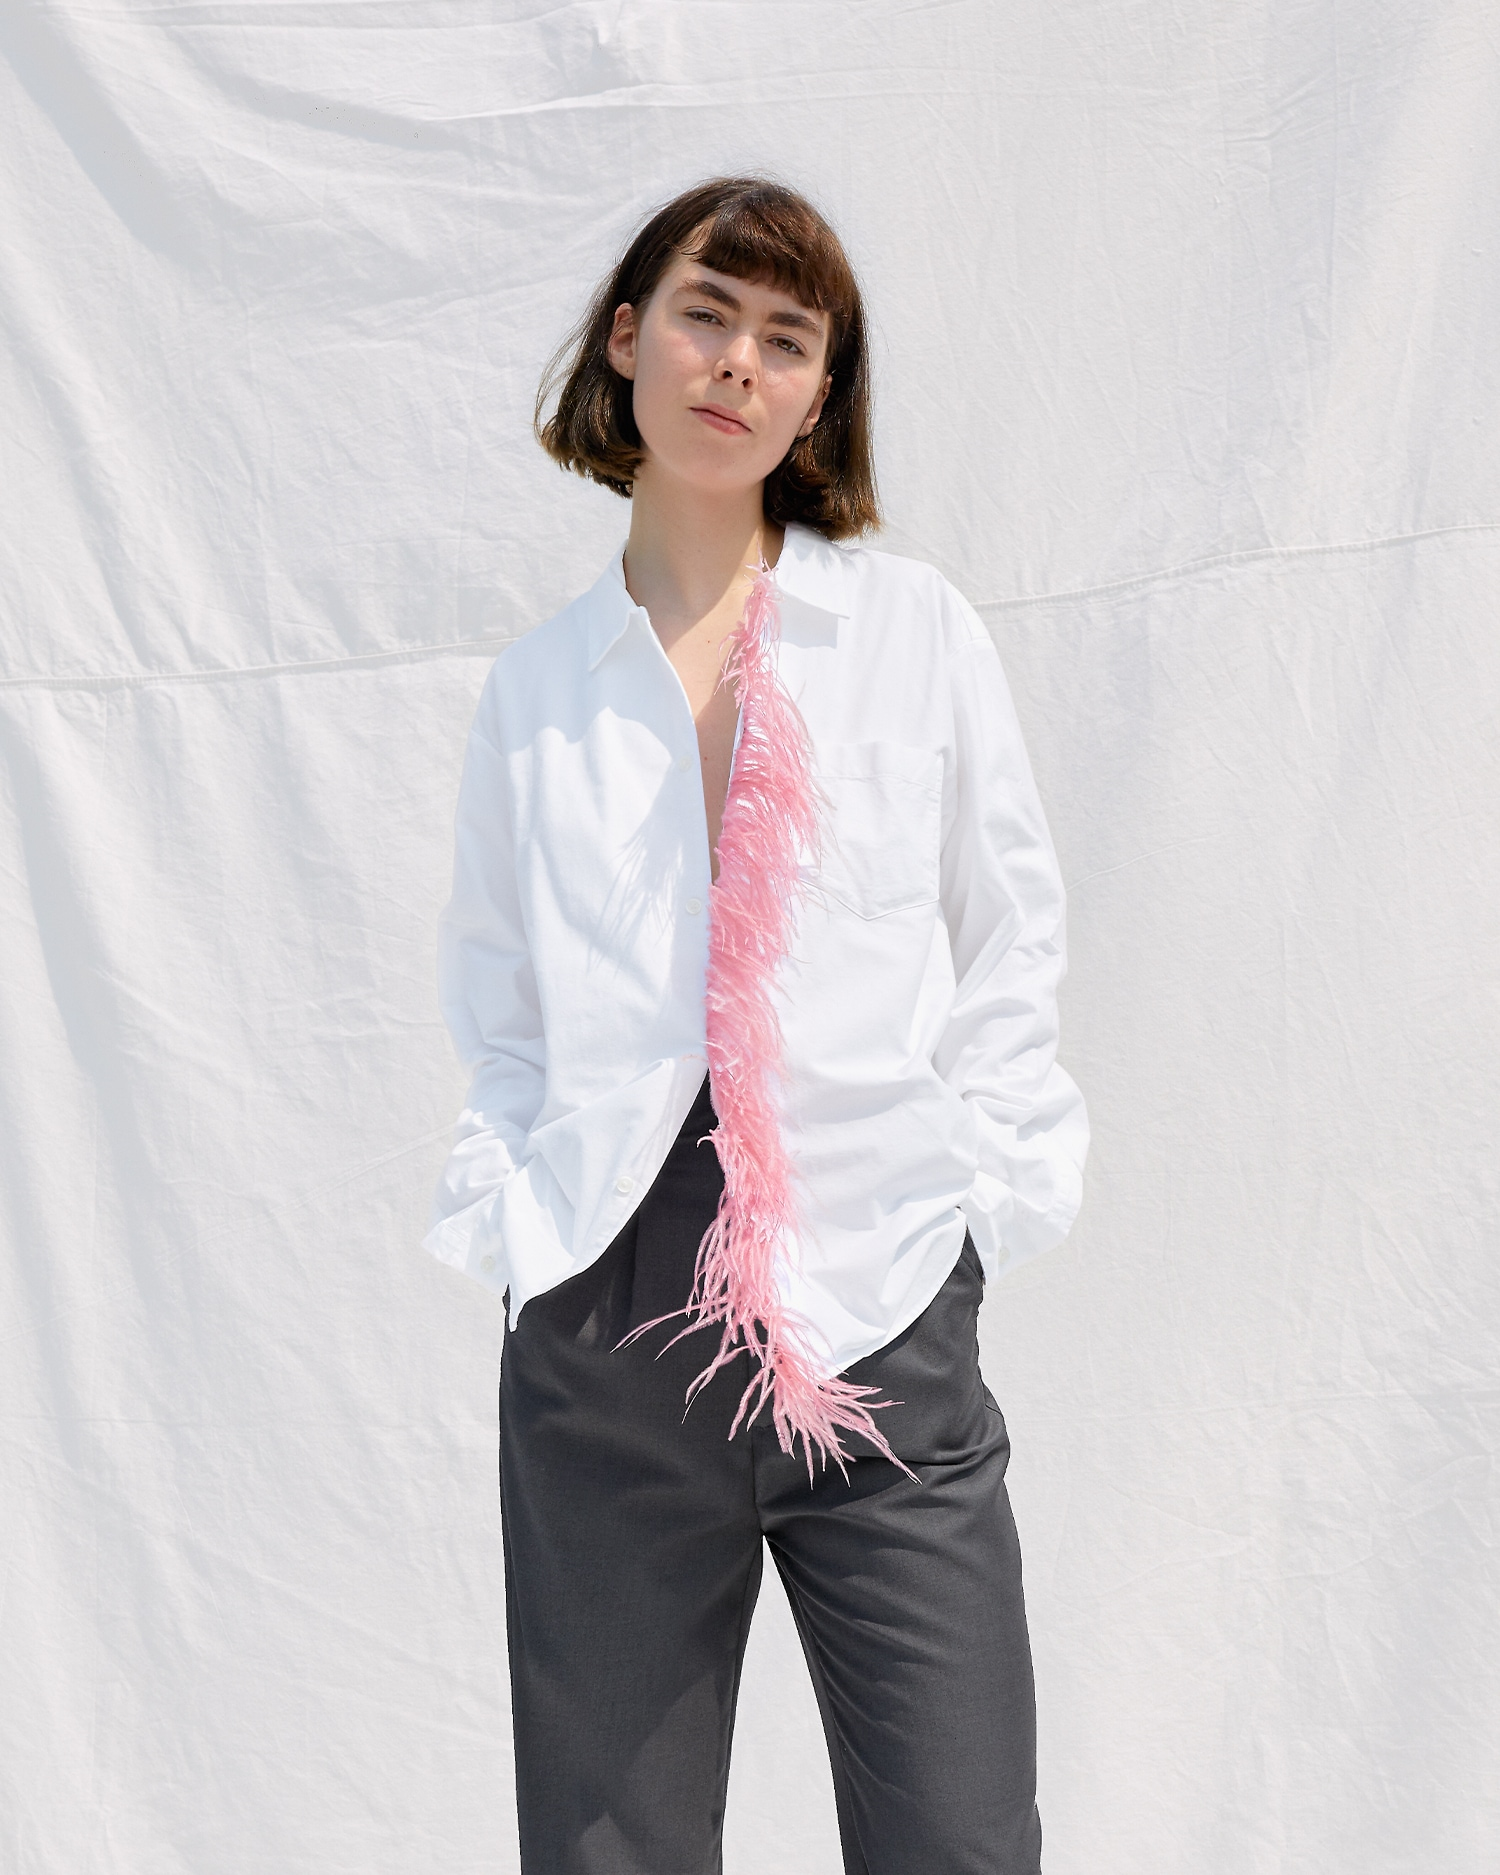 feathered-shirt-pink-one-dna.jpg